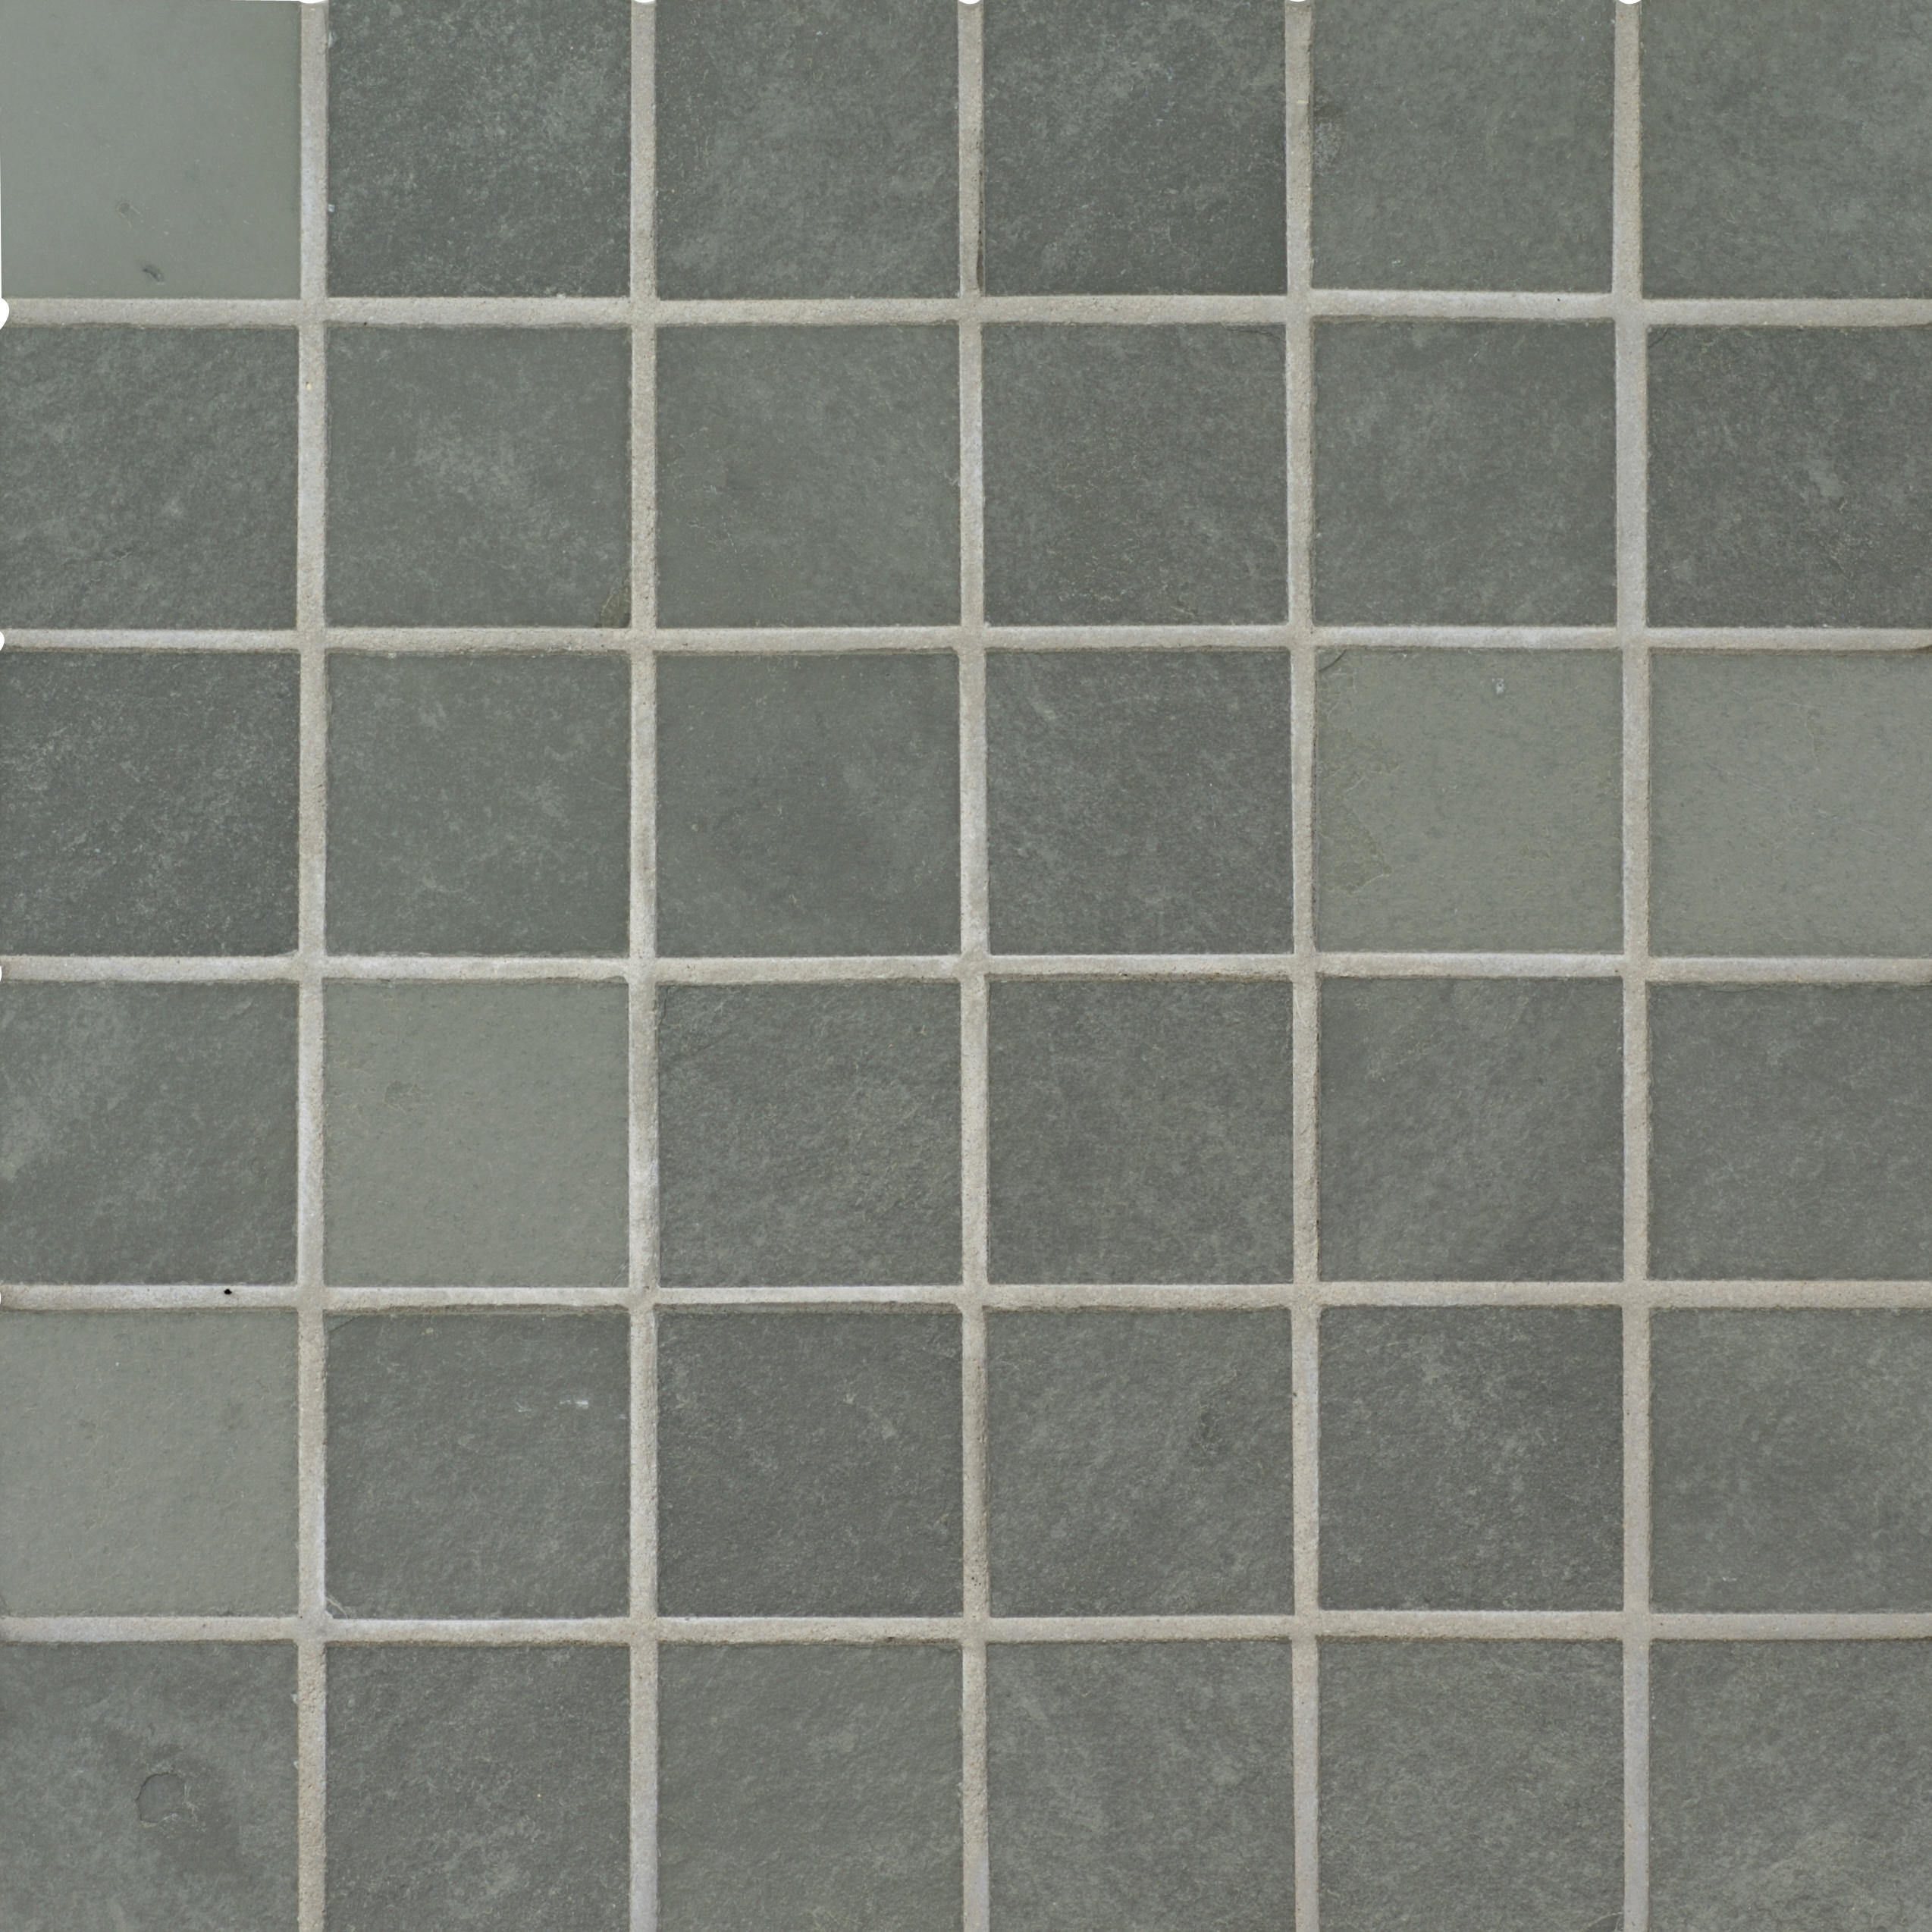 Riven slate floor tiles flooring ideas and inspiration gris riven slate floor tiles mandarin stone dailygadgetfo Image collections